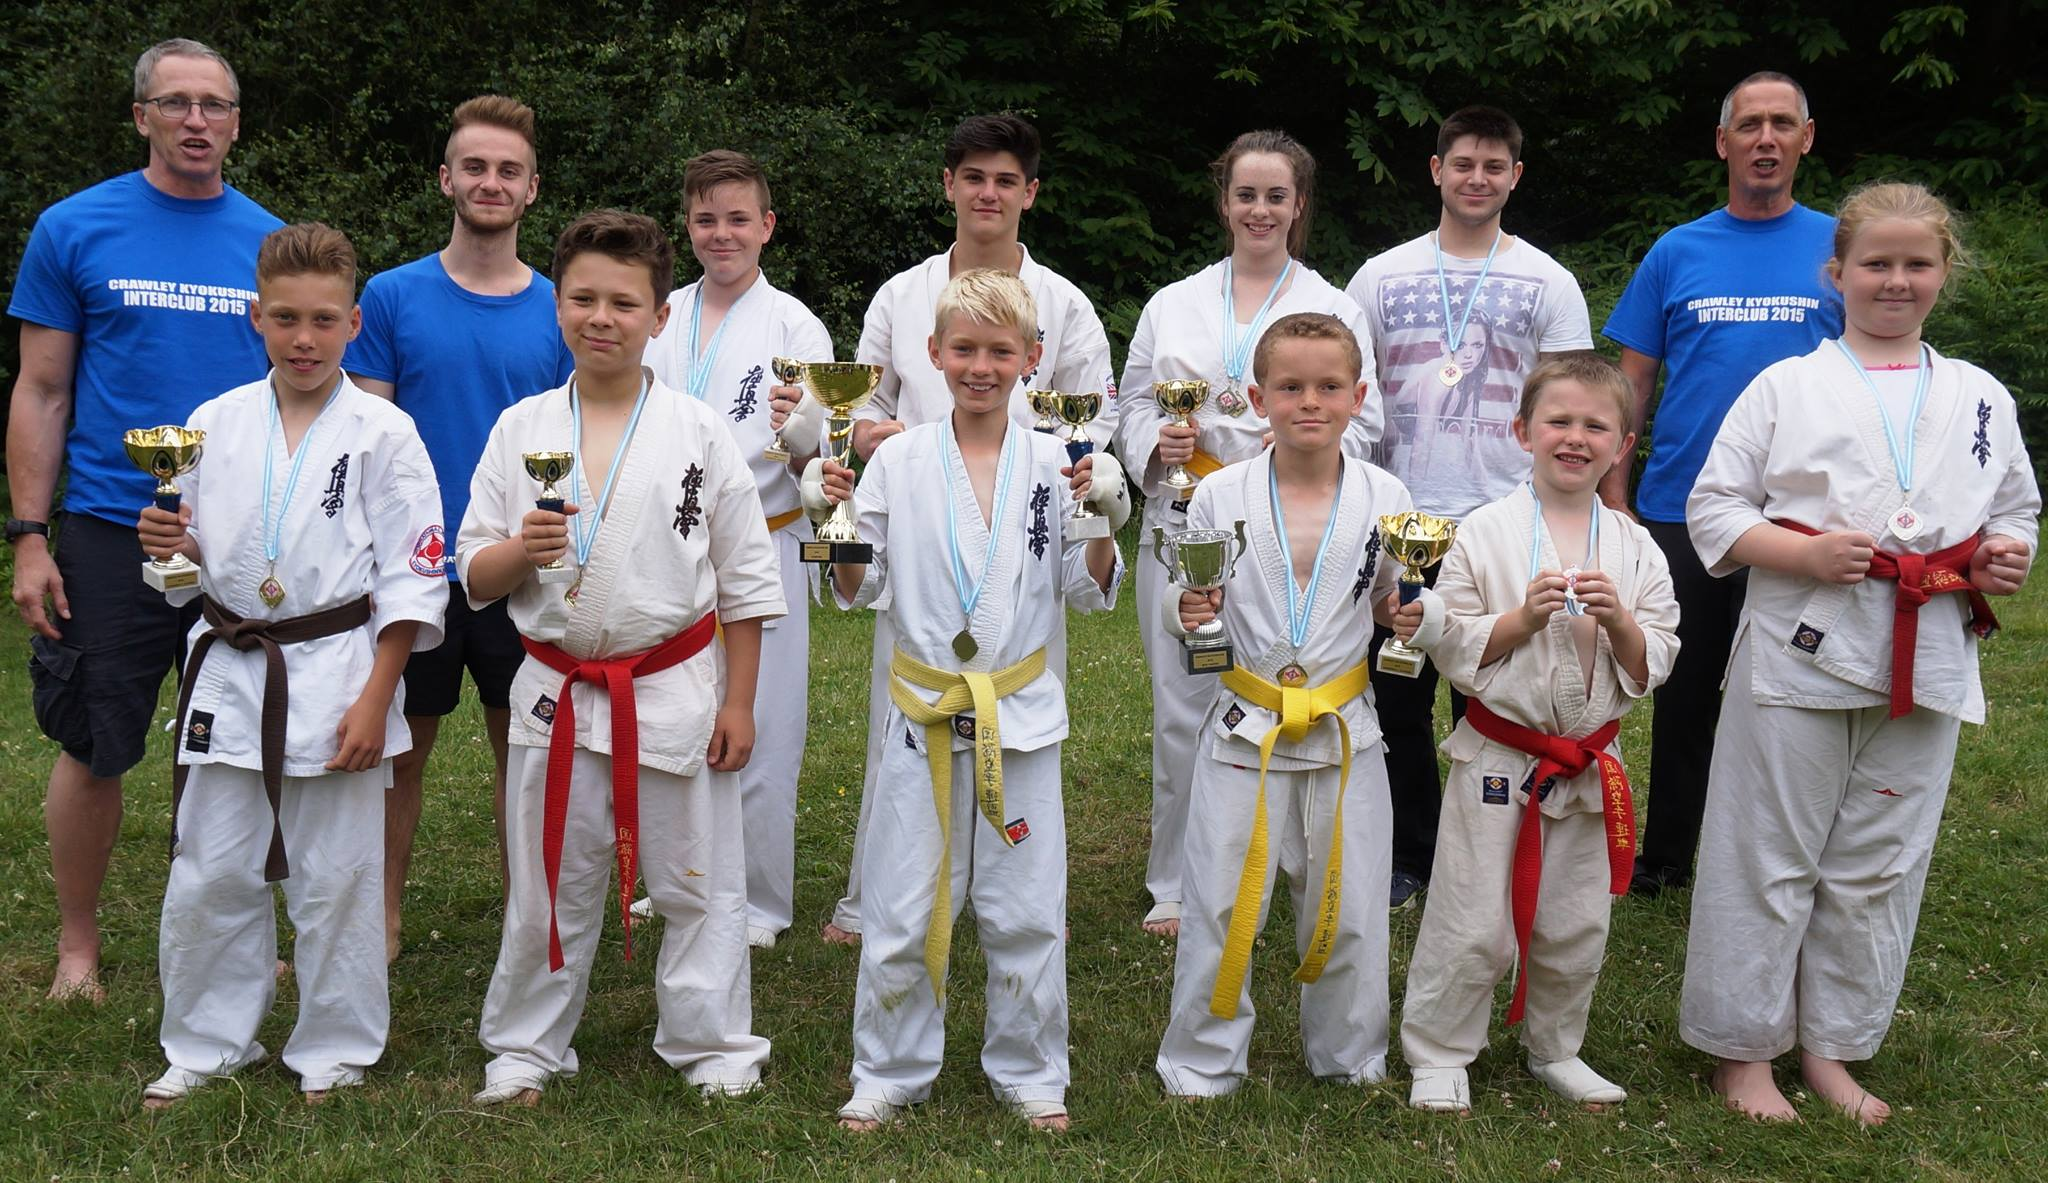 Shihan David Pickthall and Neil Madeley with last year's medal winners